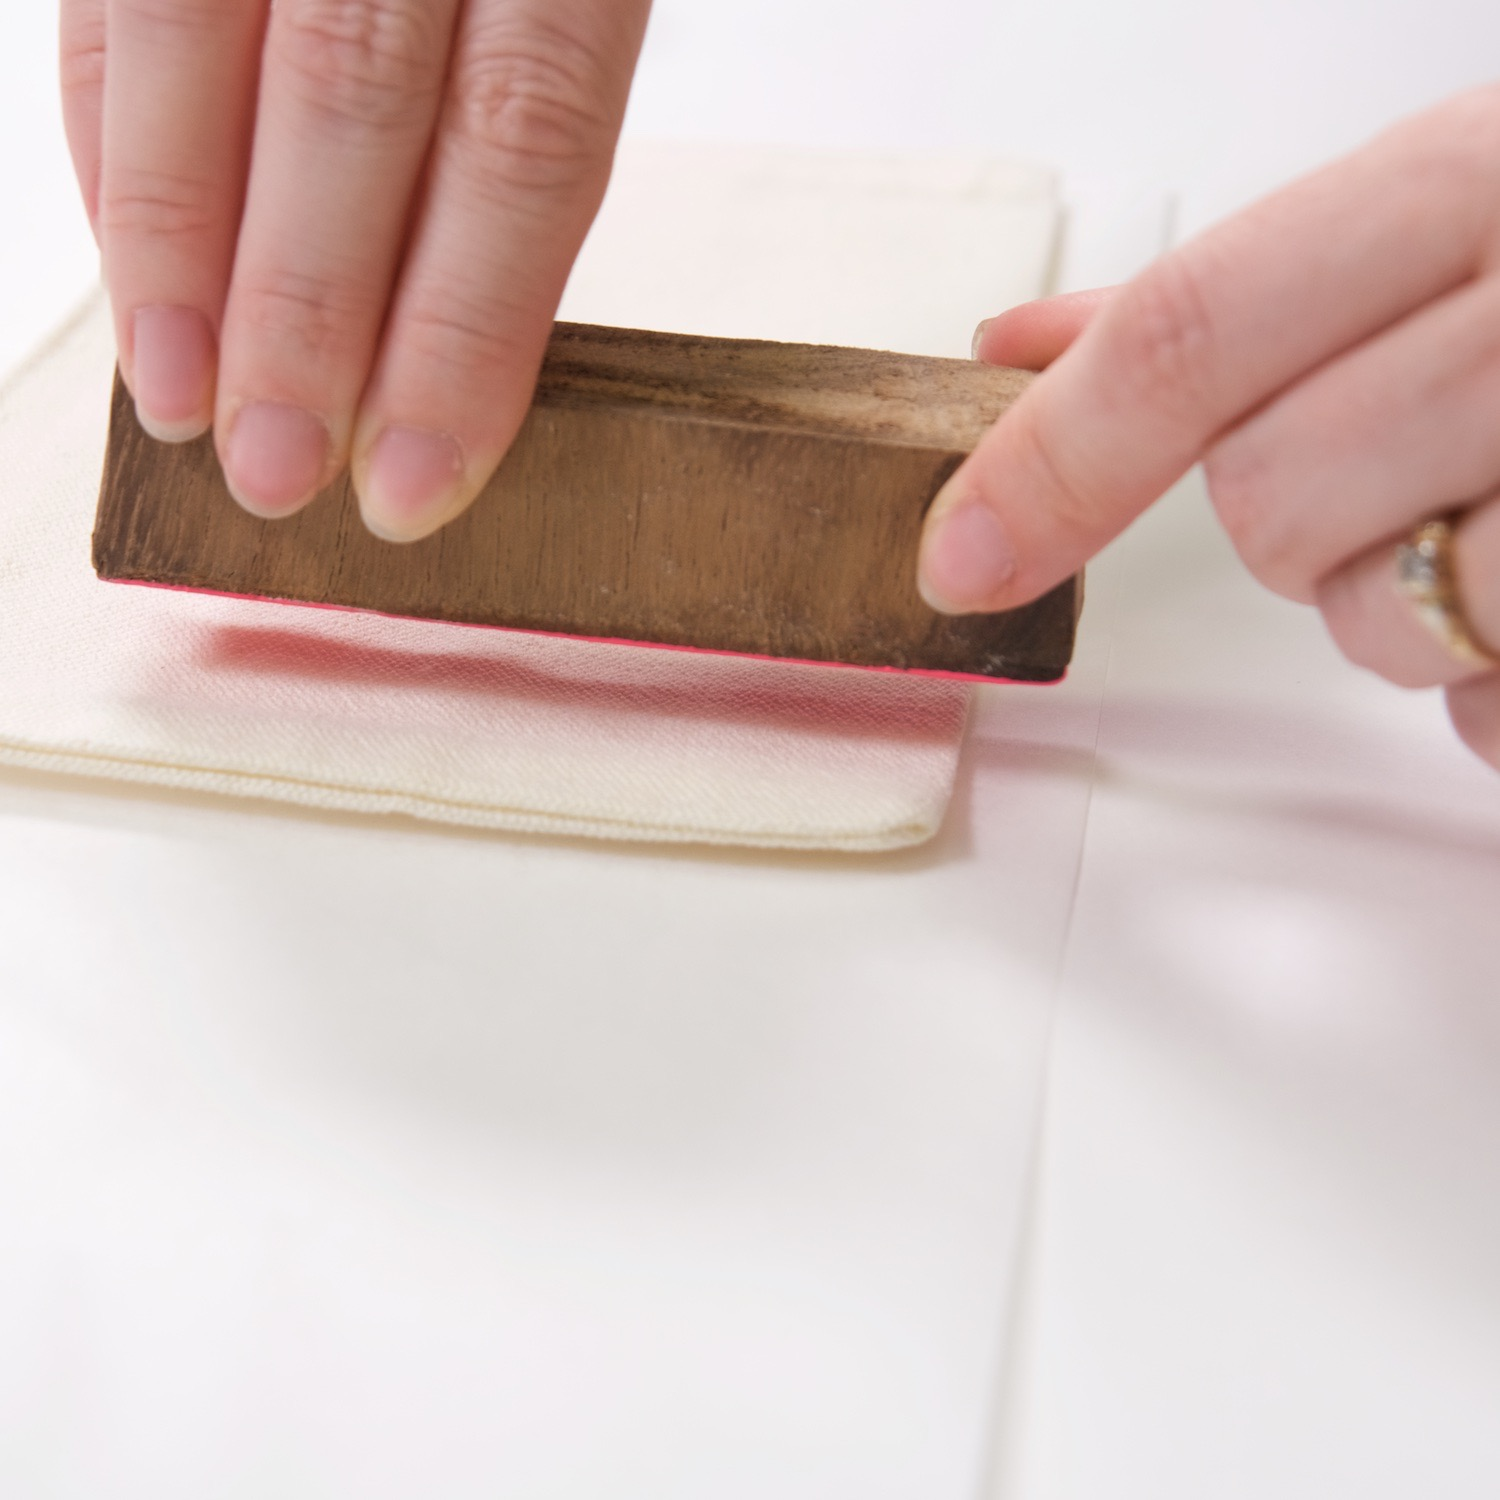 close up of pressing the wood block on the coin purse